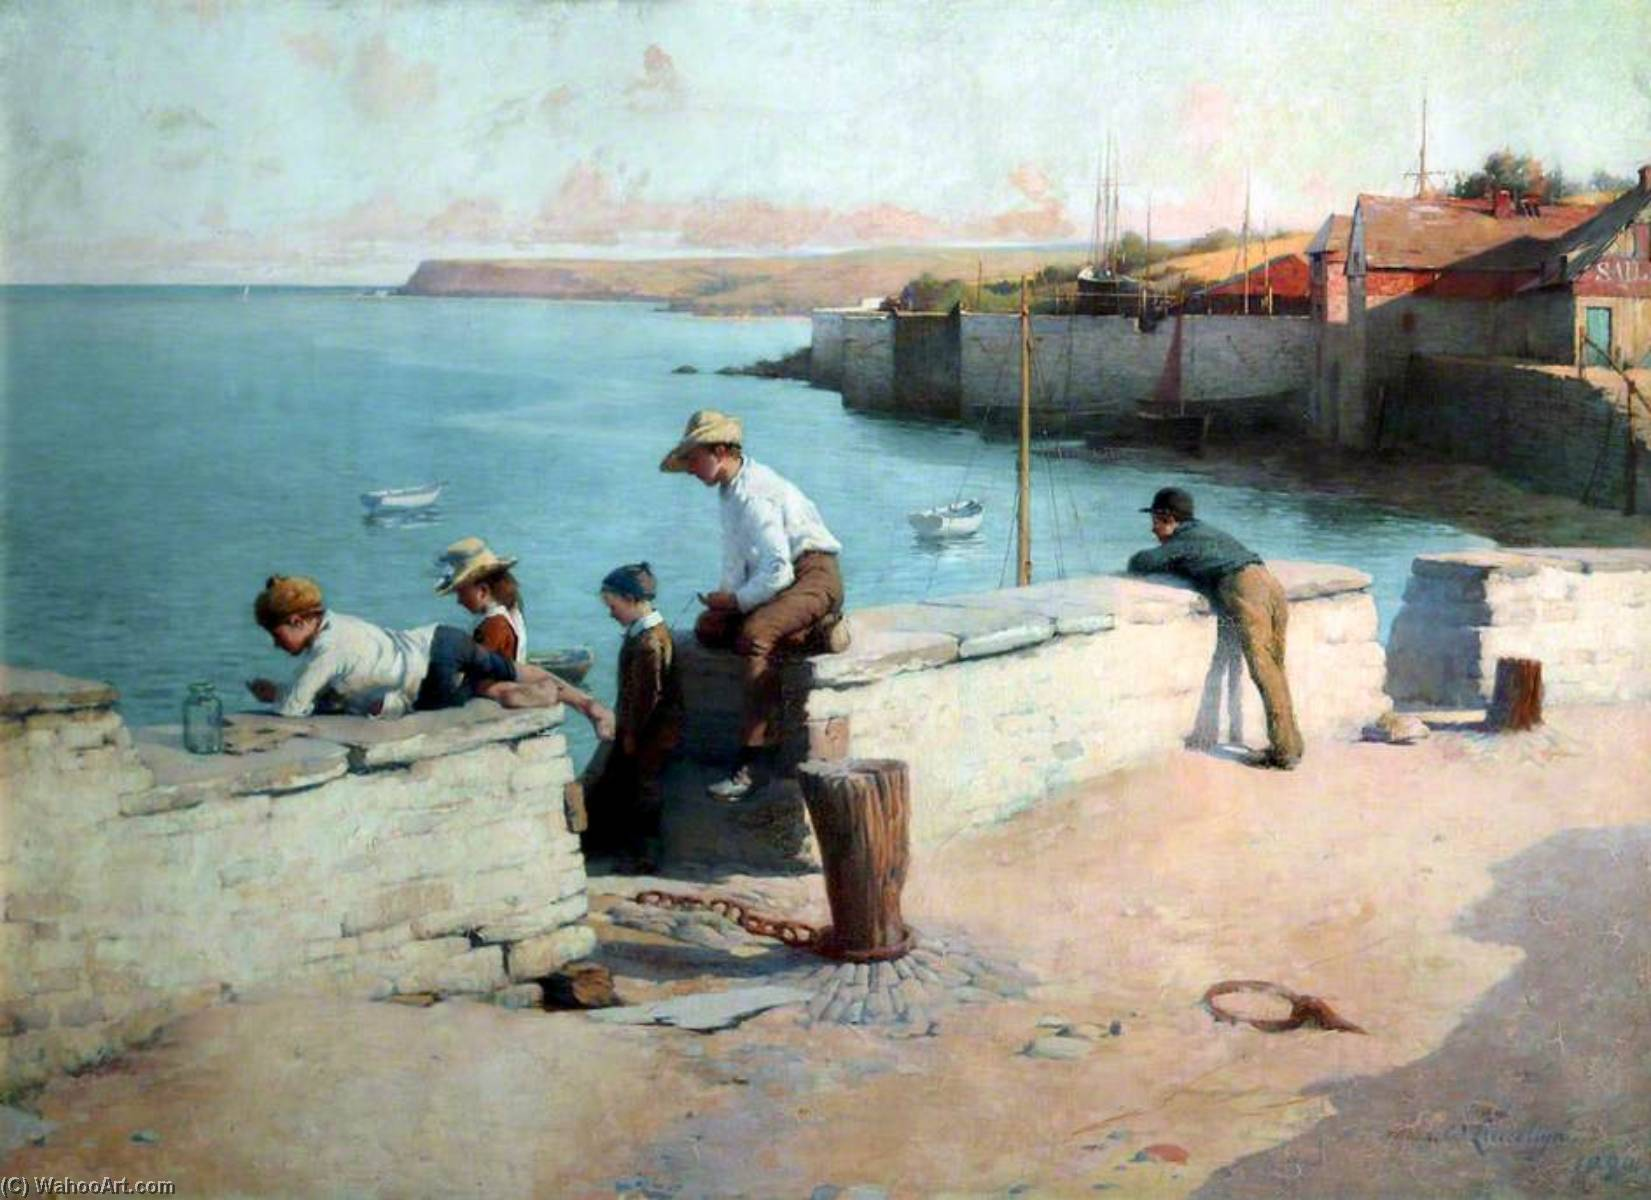 Evening at Padstow, Cornwall, Oil On Canvas by Samuel Henry William Llewellyn